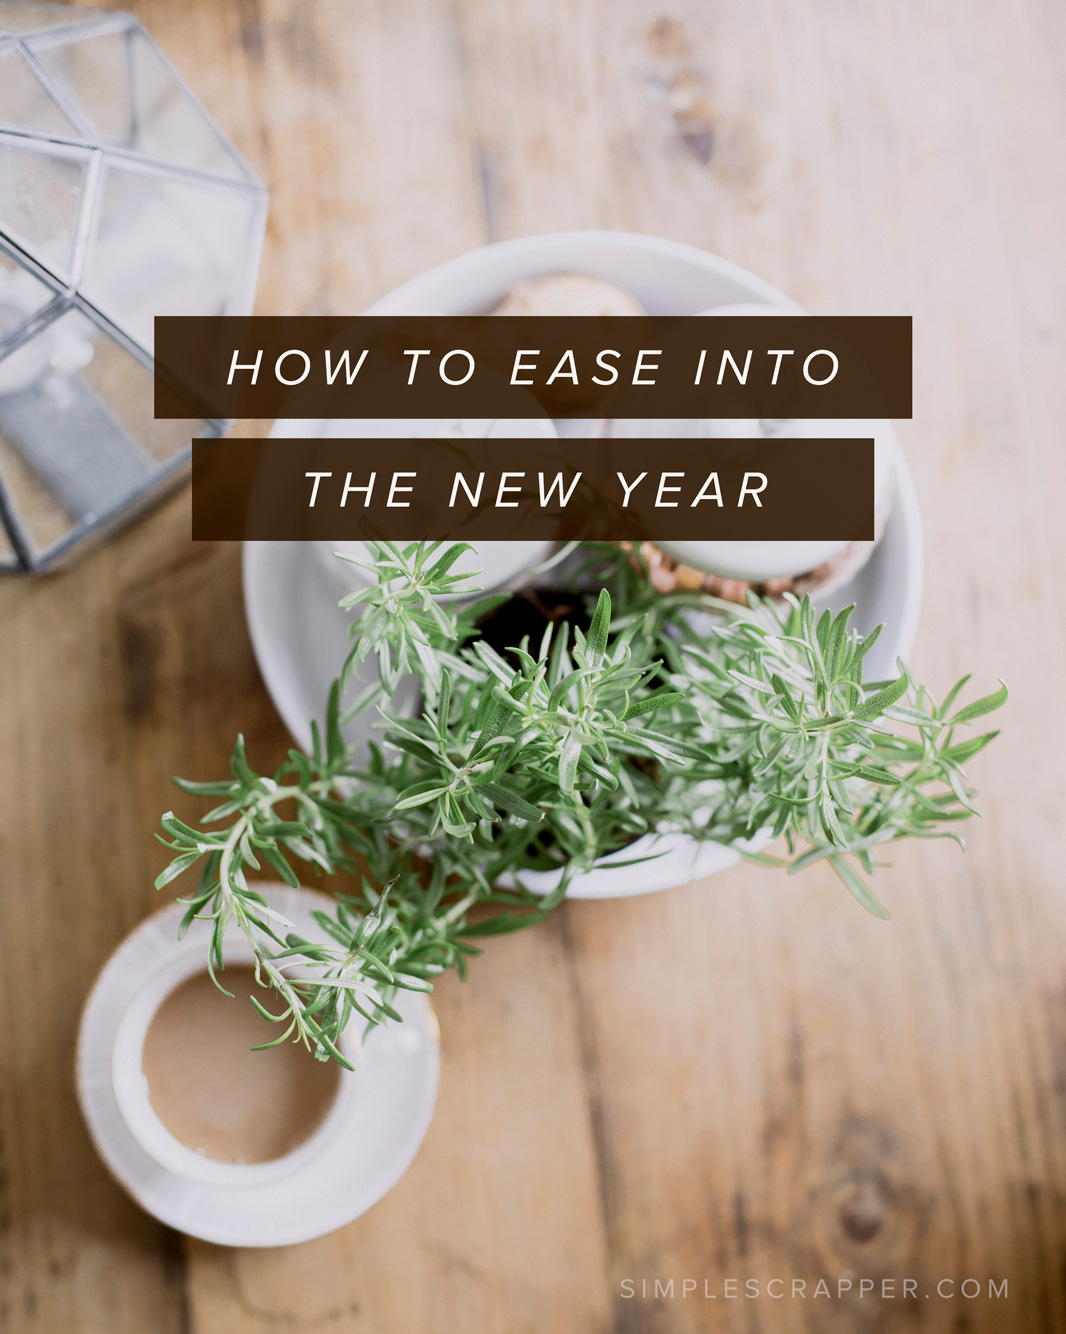 How to Ease into the New Year